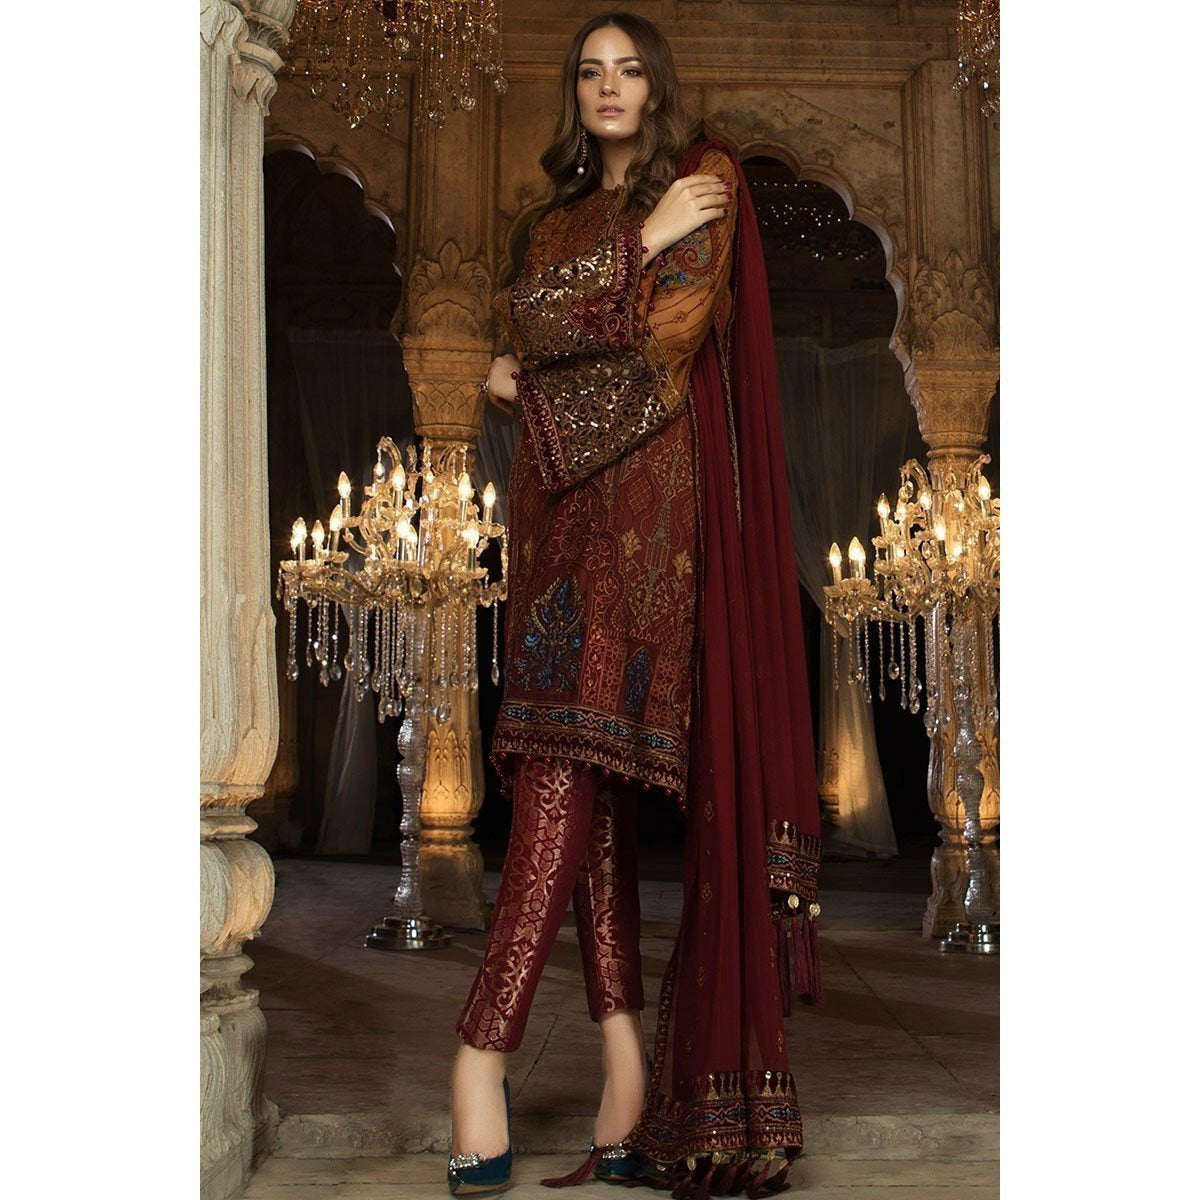 57f3830ff6 MARIA B MBROIDERED EID COLLECTION 2018 - VOL 2 - RUST & MAROON (BD-1407)